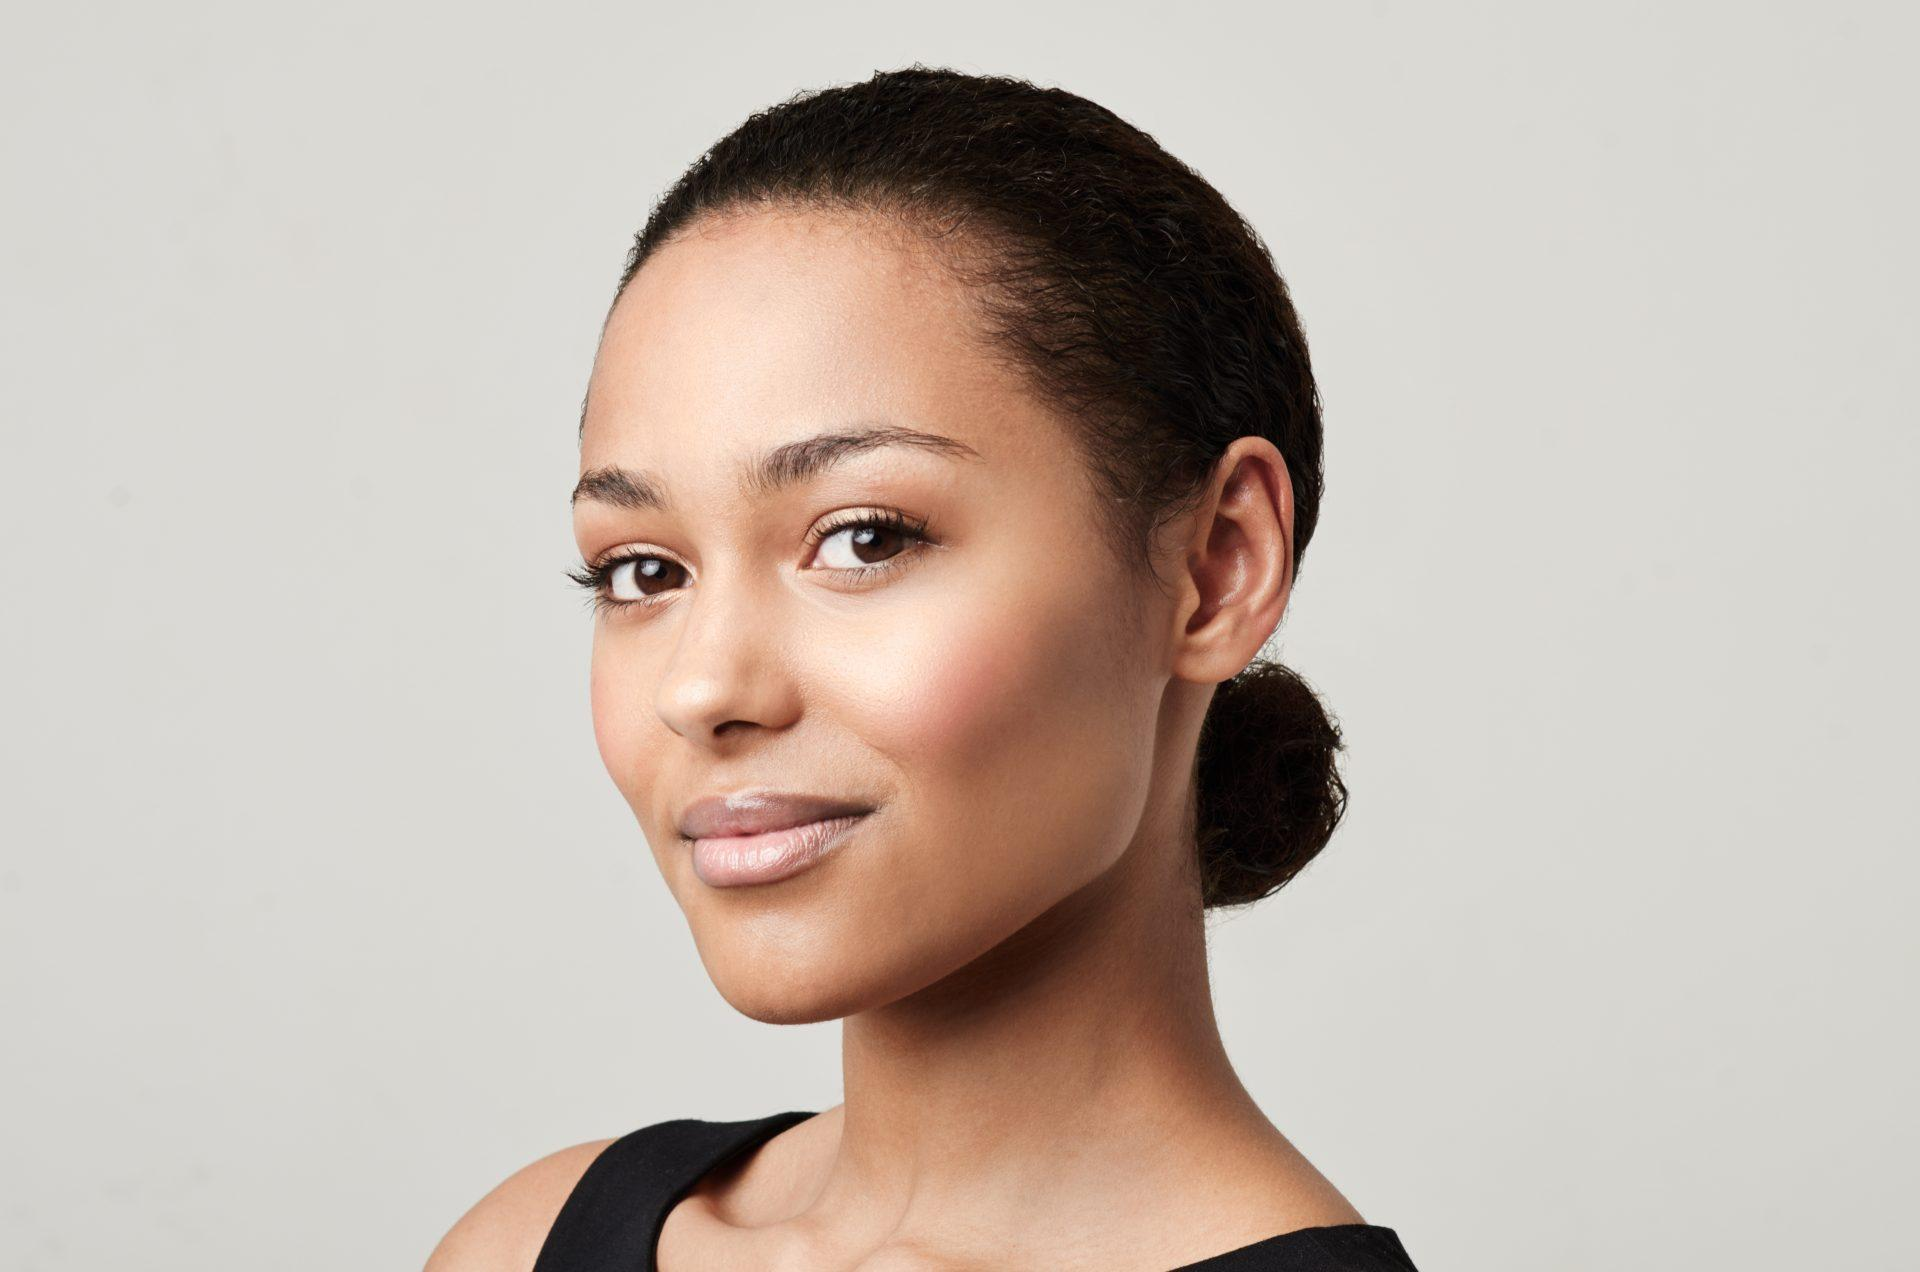 Head shot of a beautiful ethnic woman with sleeked back hair